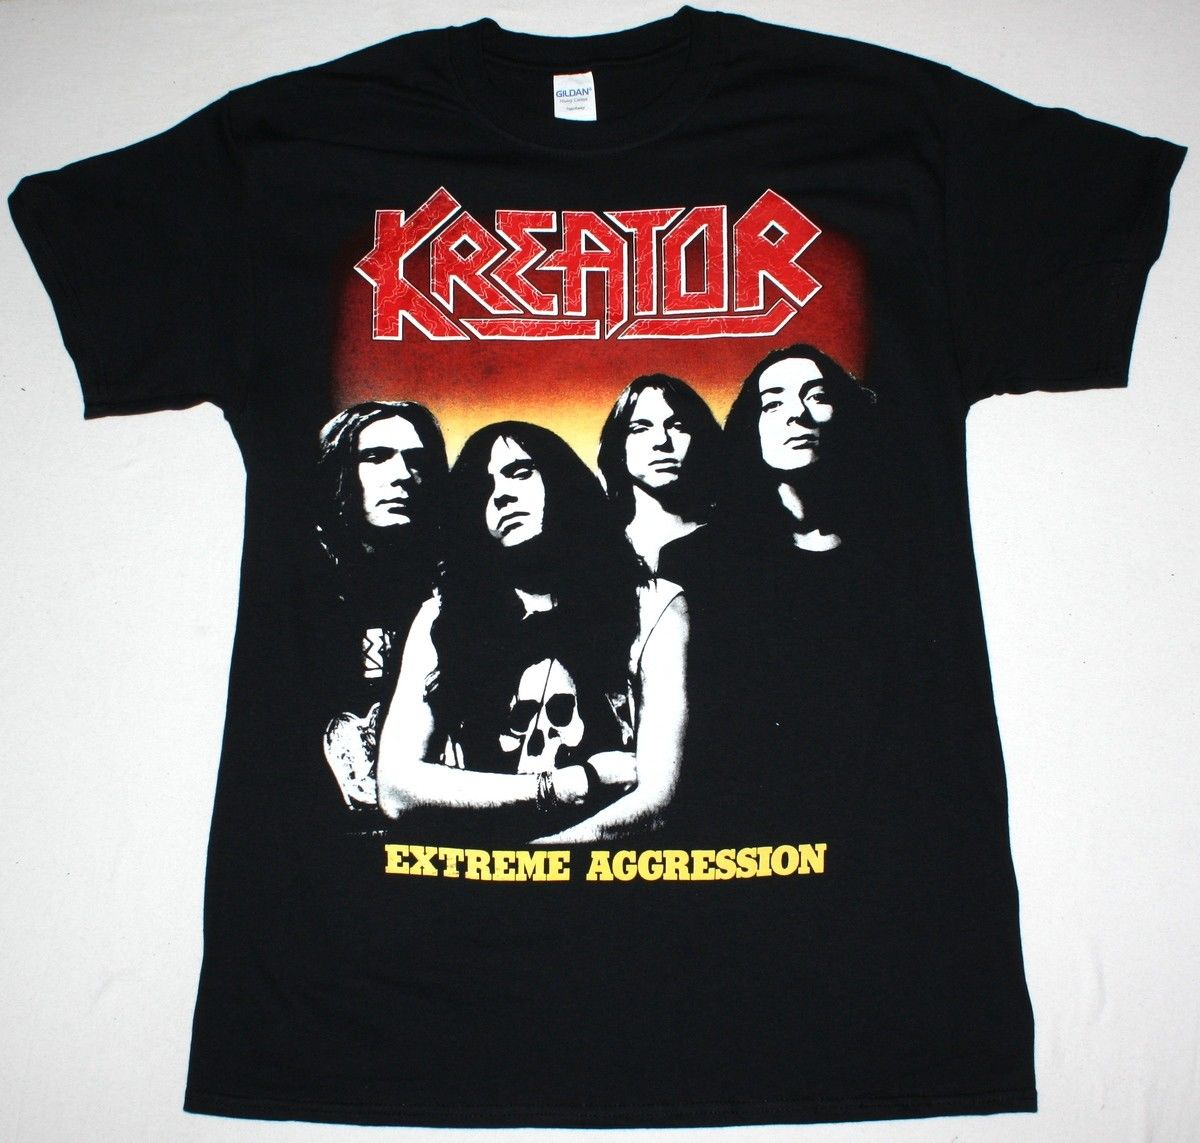 KREATOR EXTREME AGGRESSION THRASH METAL DESTRUCTION TANKARD NEW BLACK T-SHIRT Harajuku Pokemon Shirt Top Tee